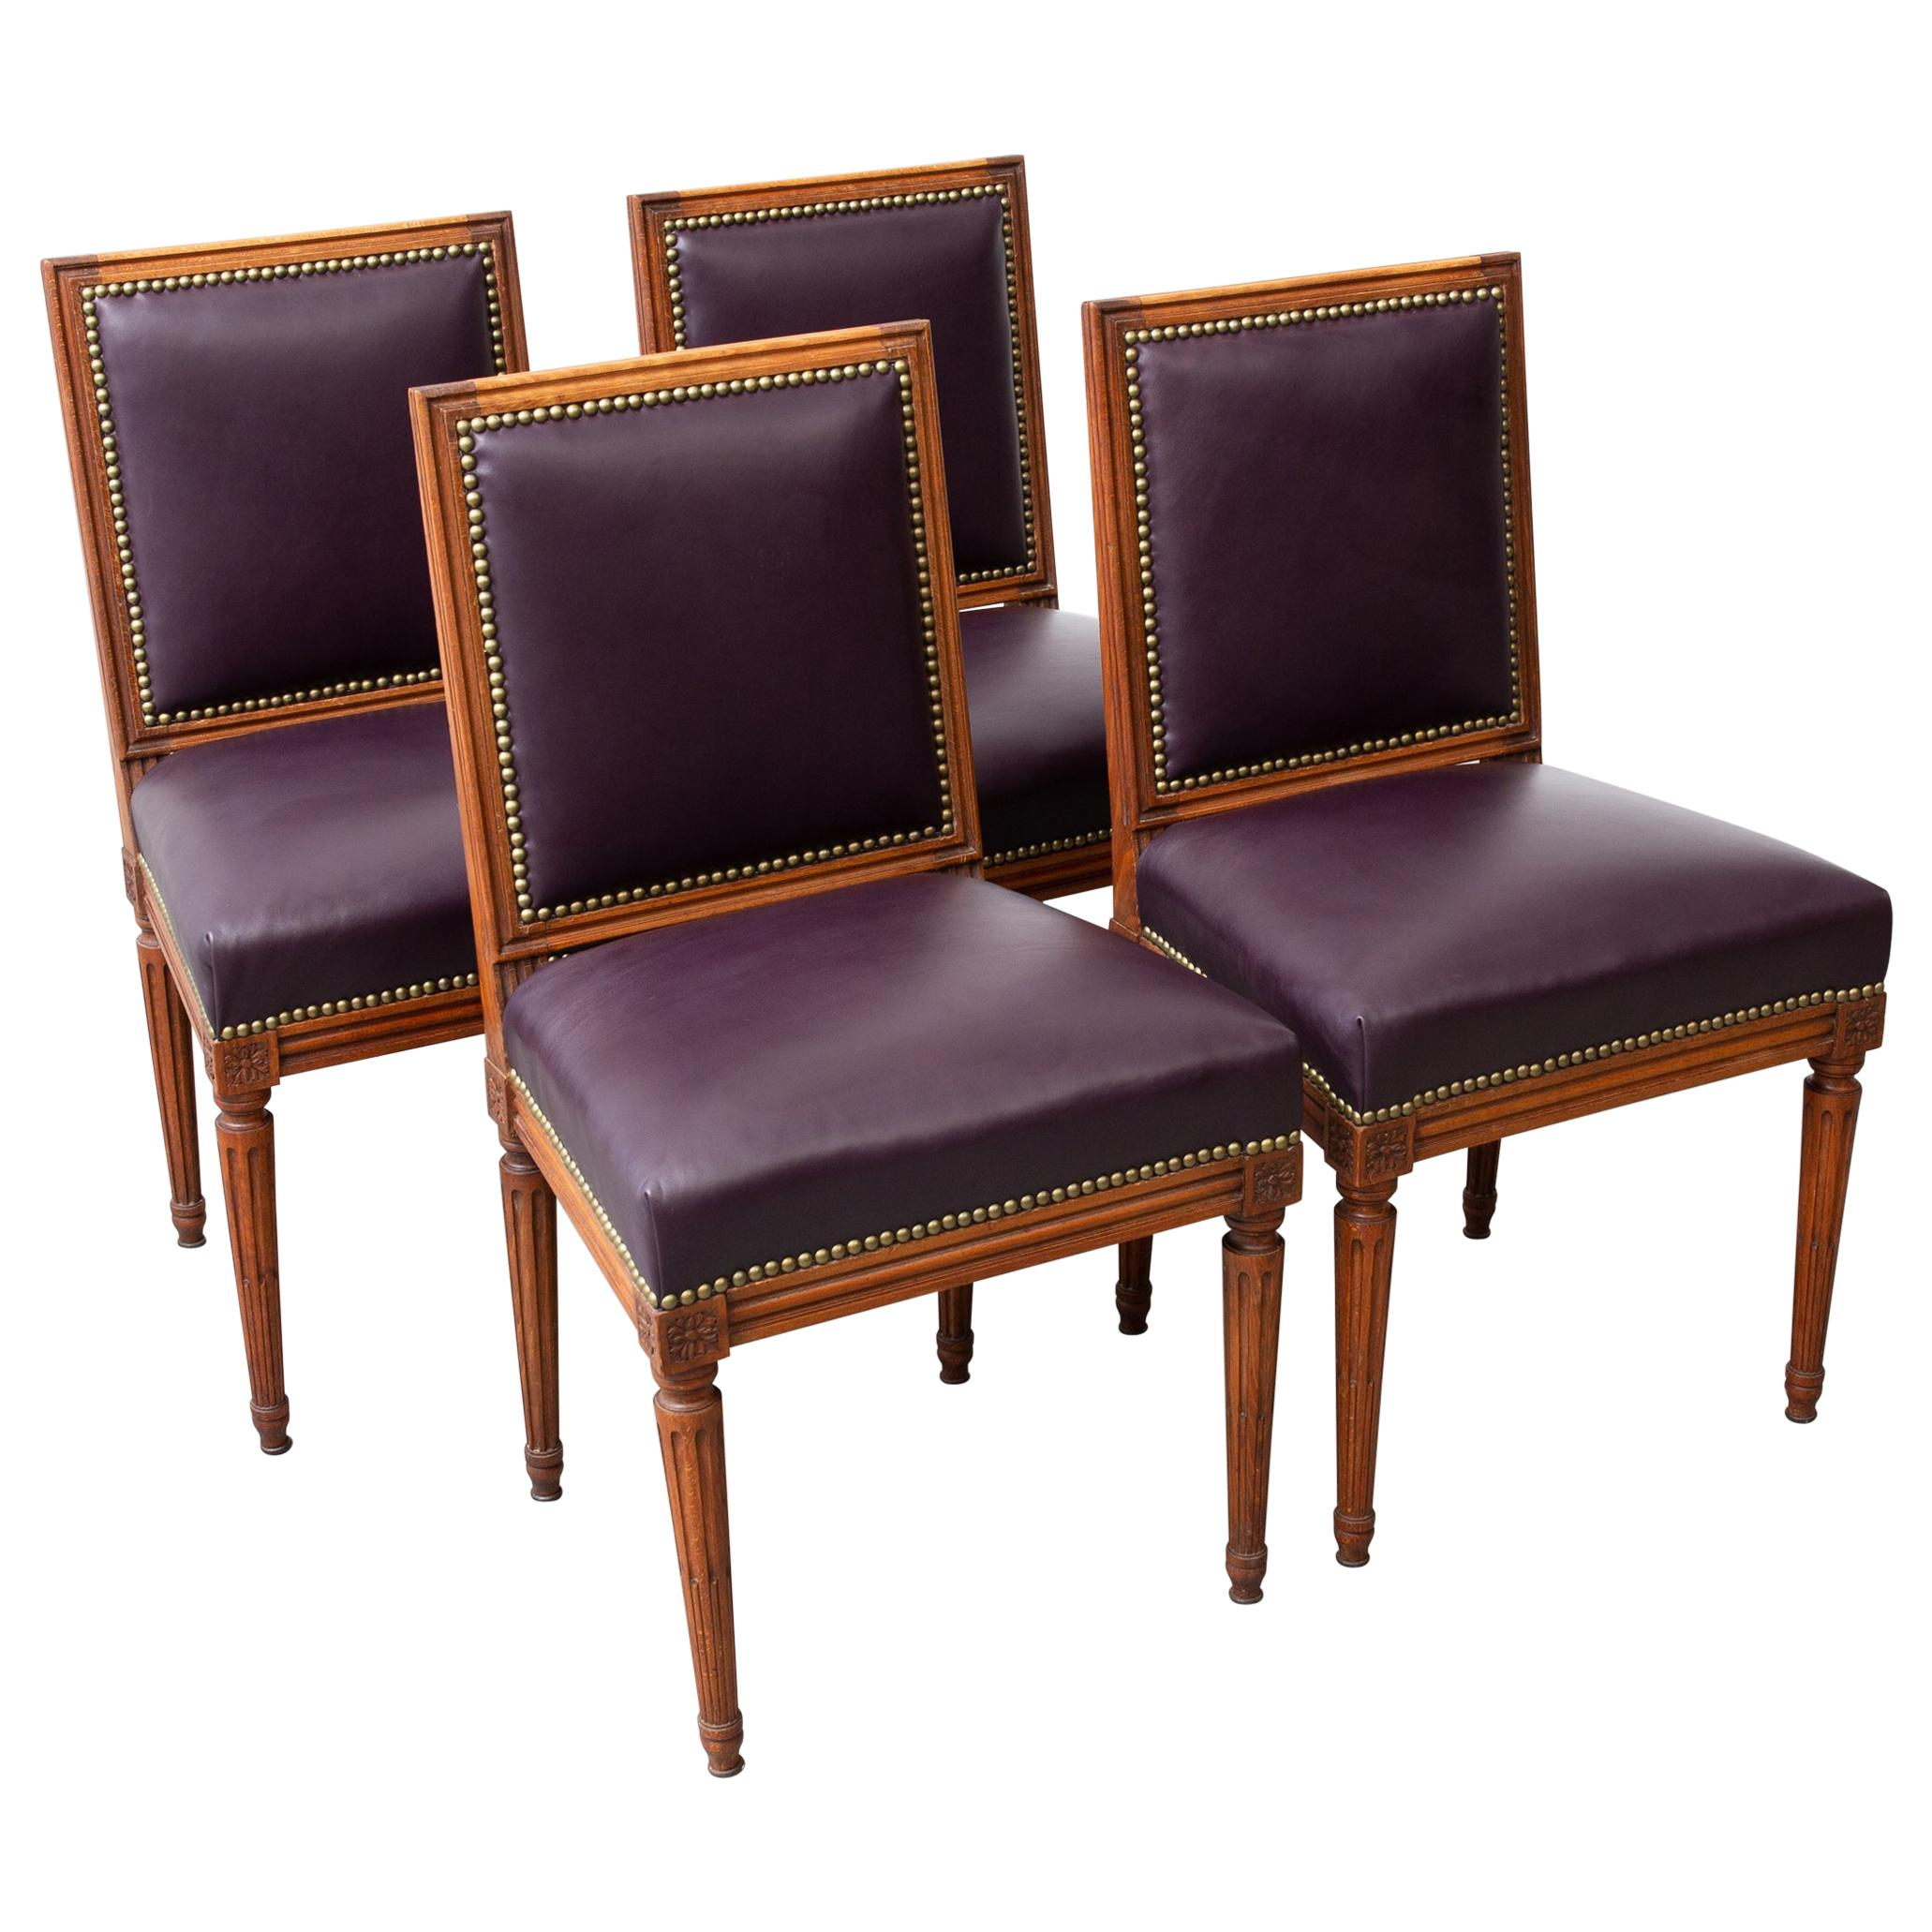 Set of 4 Louis XVI Style Carved Wood Dining Chairs